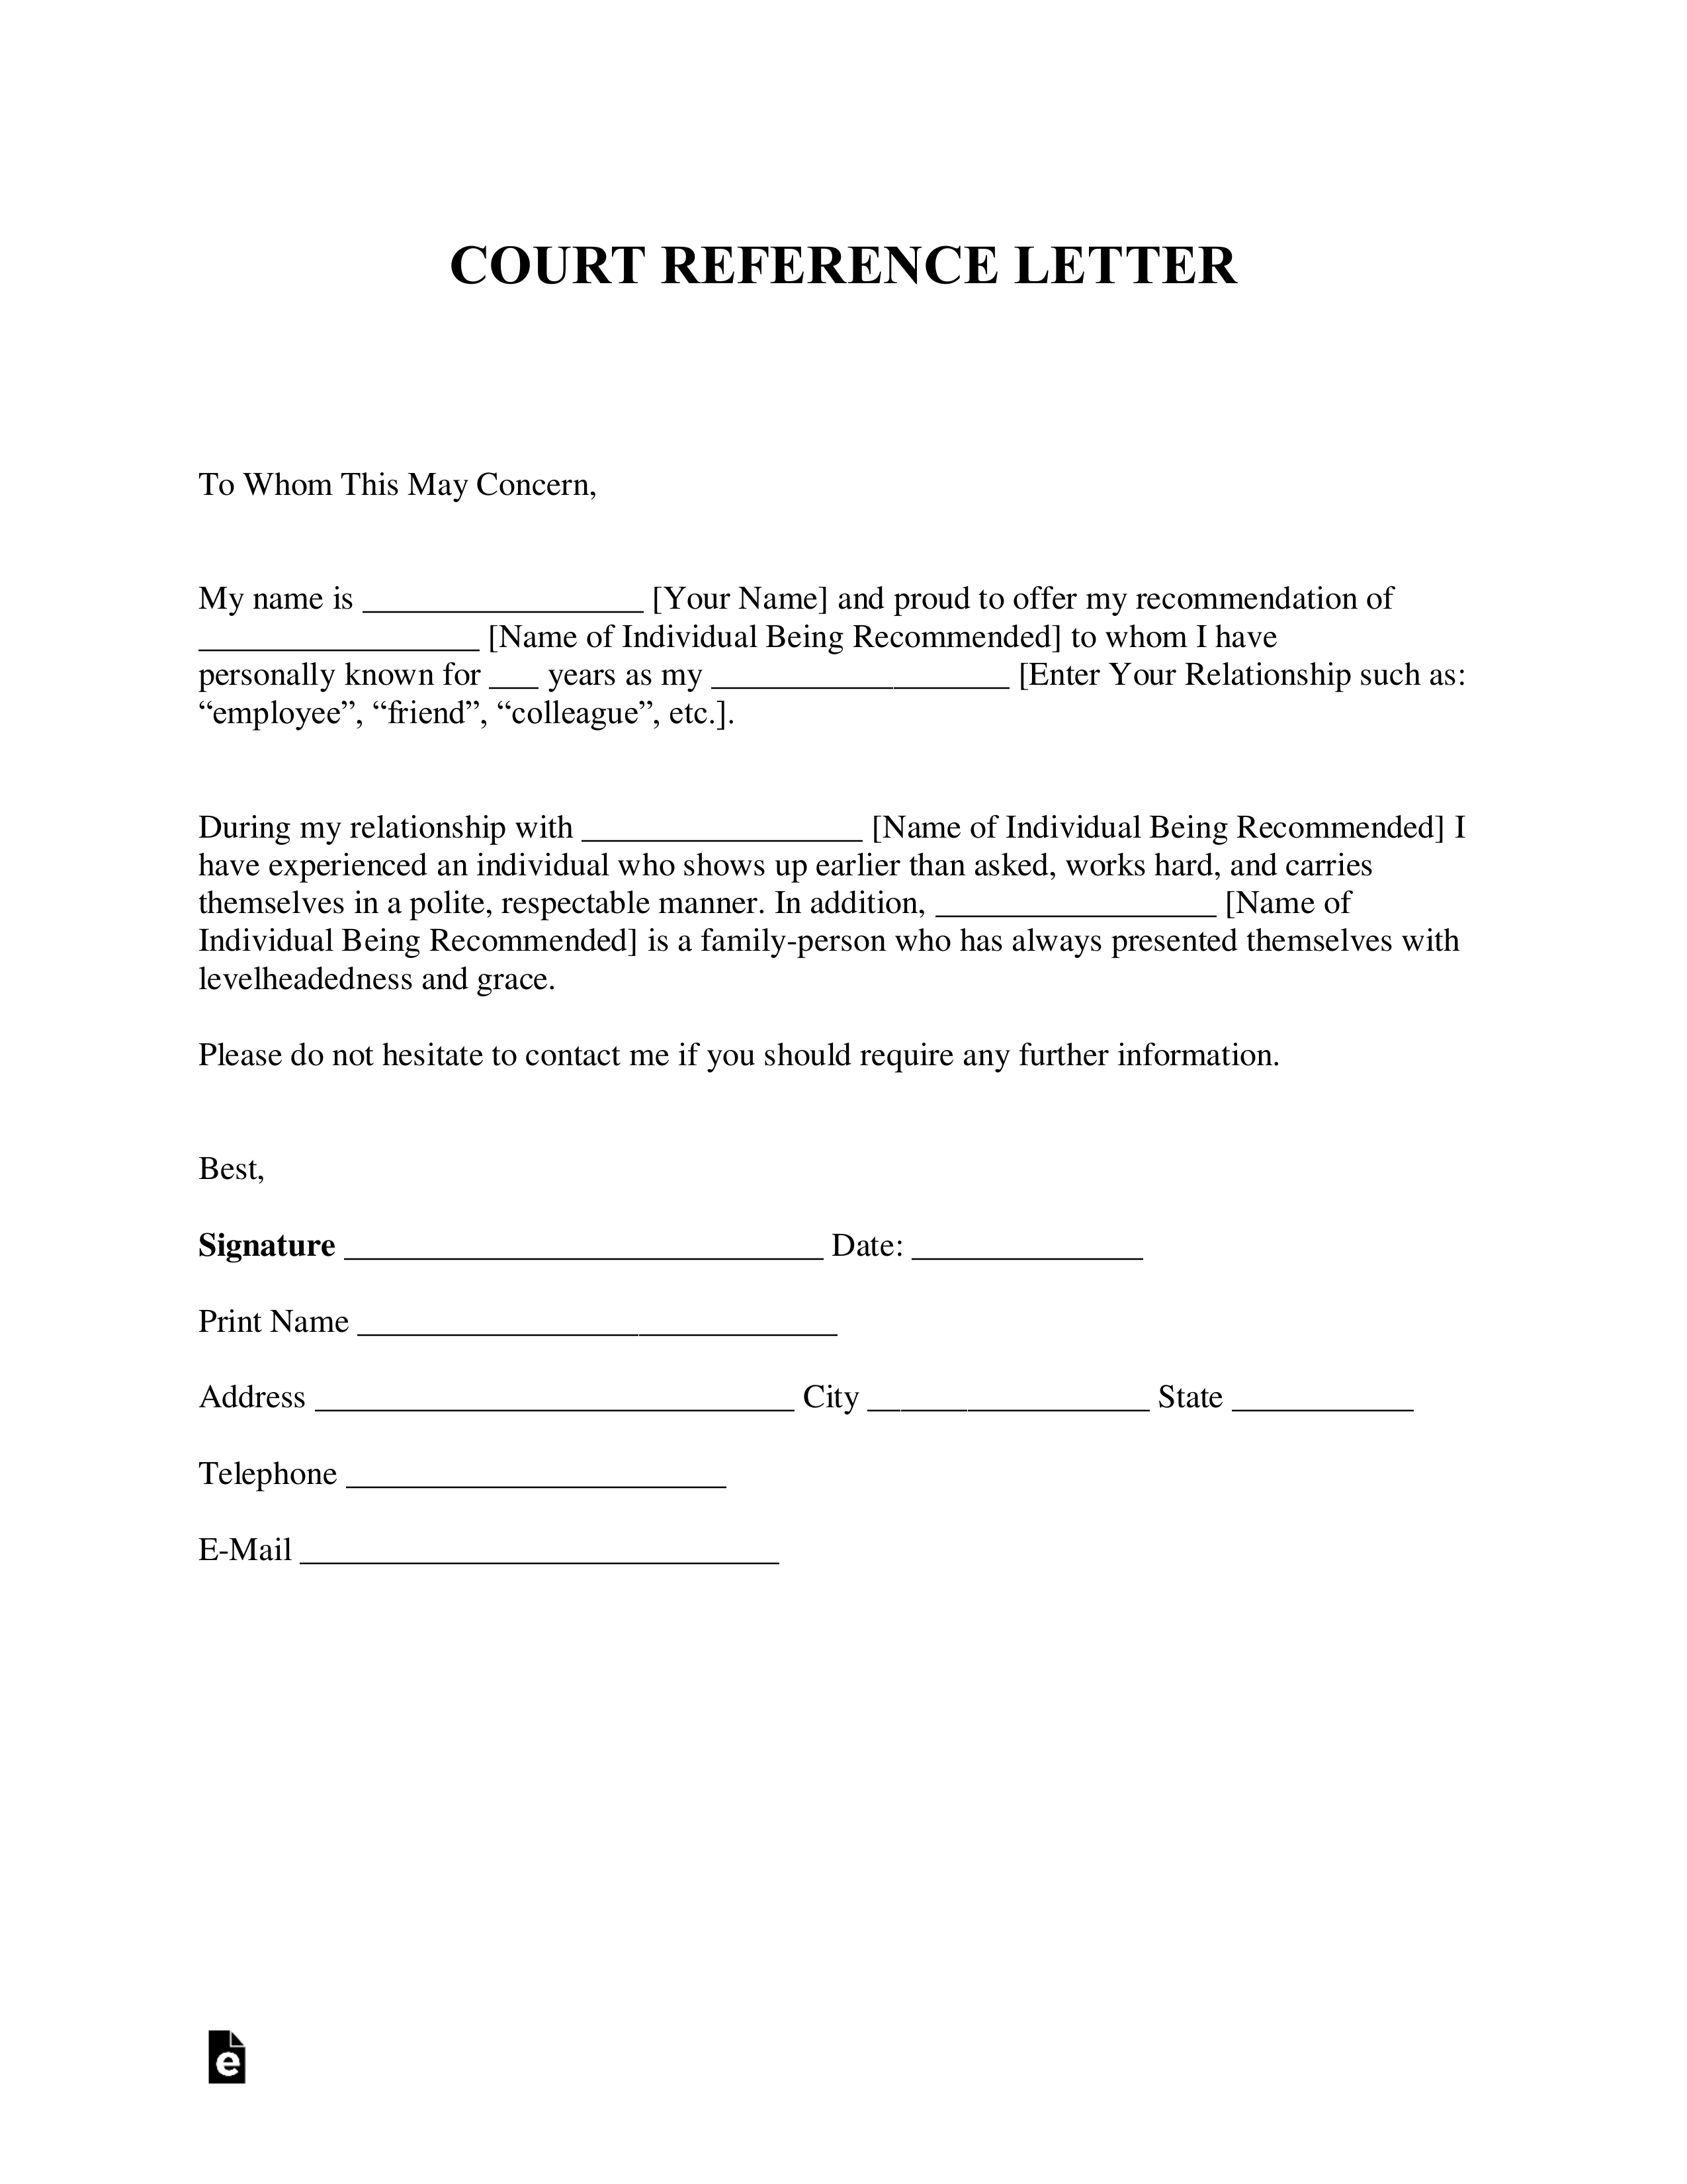 Free Character Reference Letter (for Court) Template